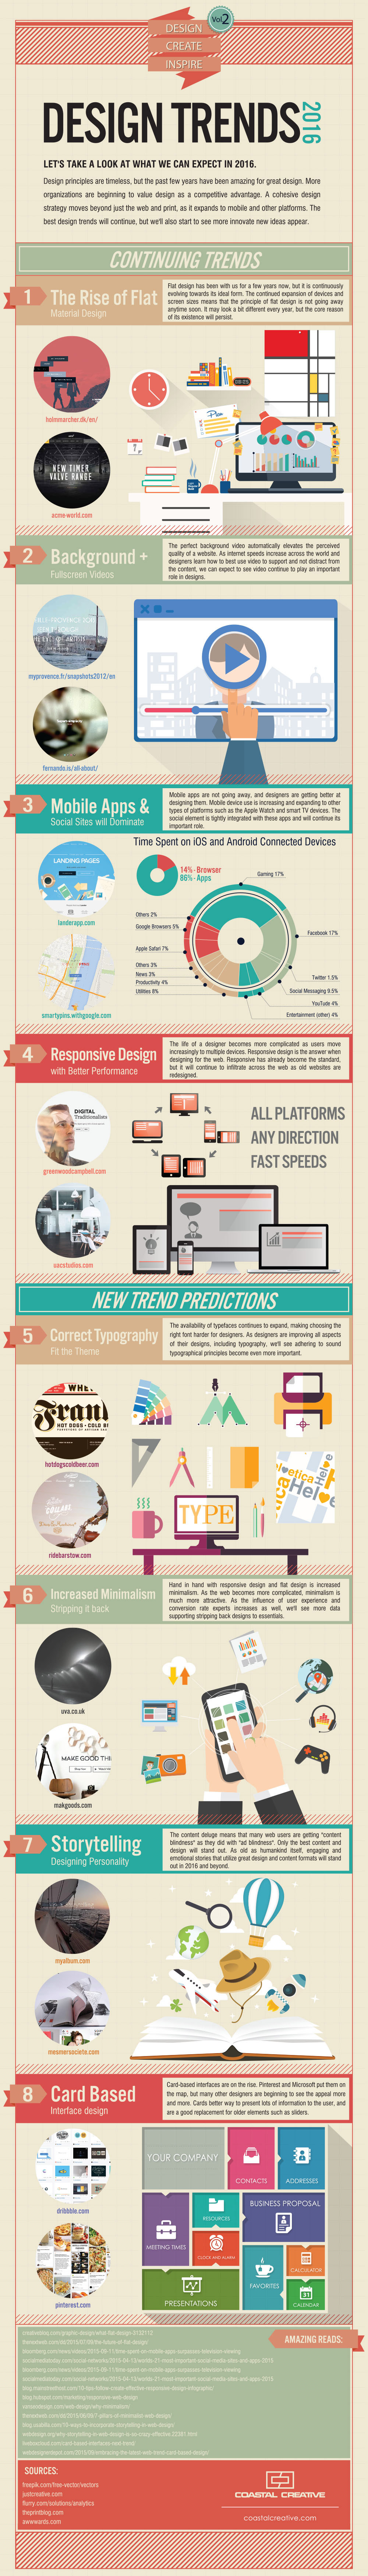 2016-design-trends-infographic